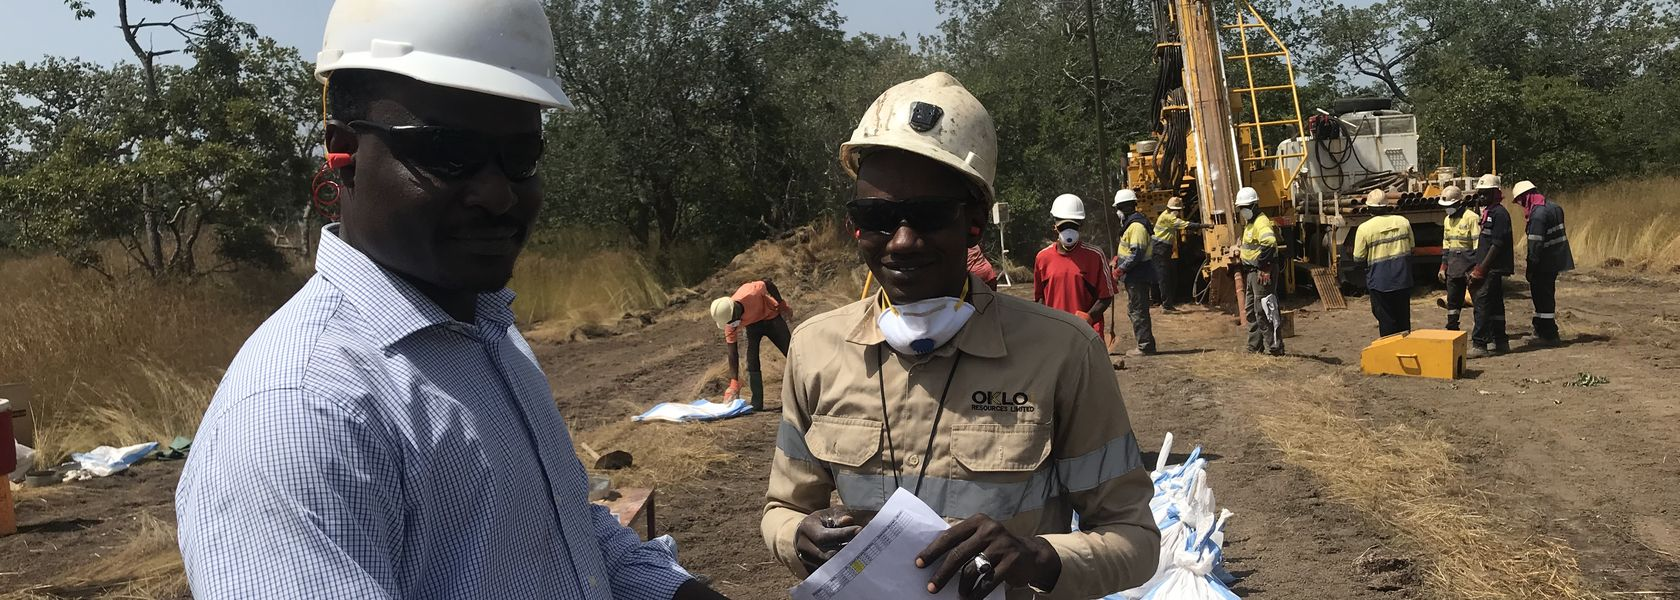 High-grade gold hit by Oklo at Seko